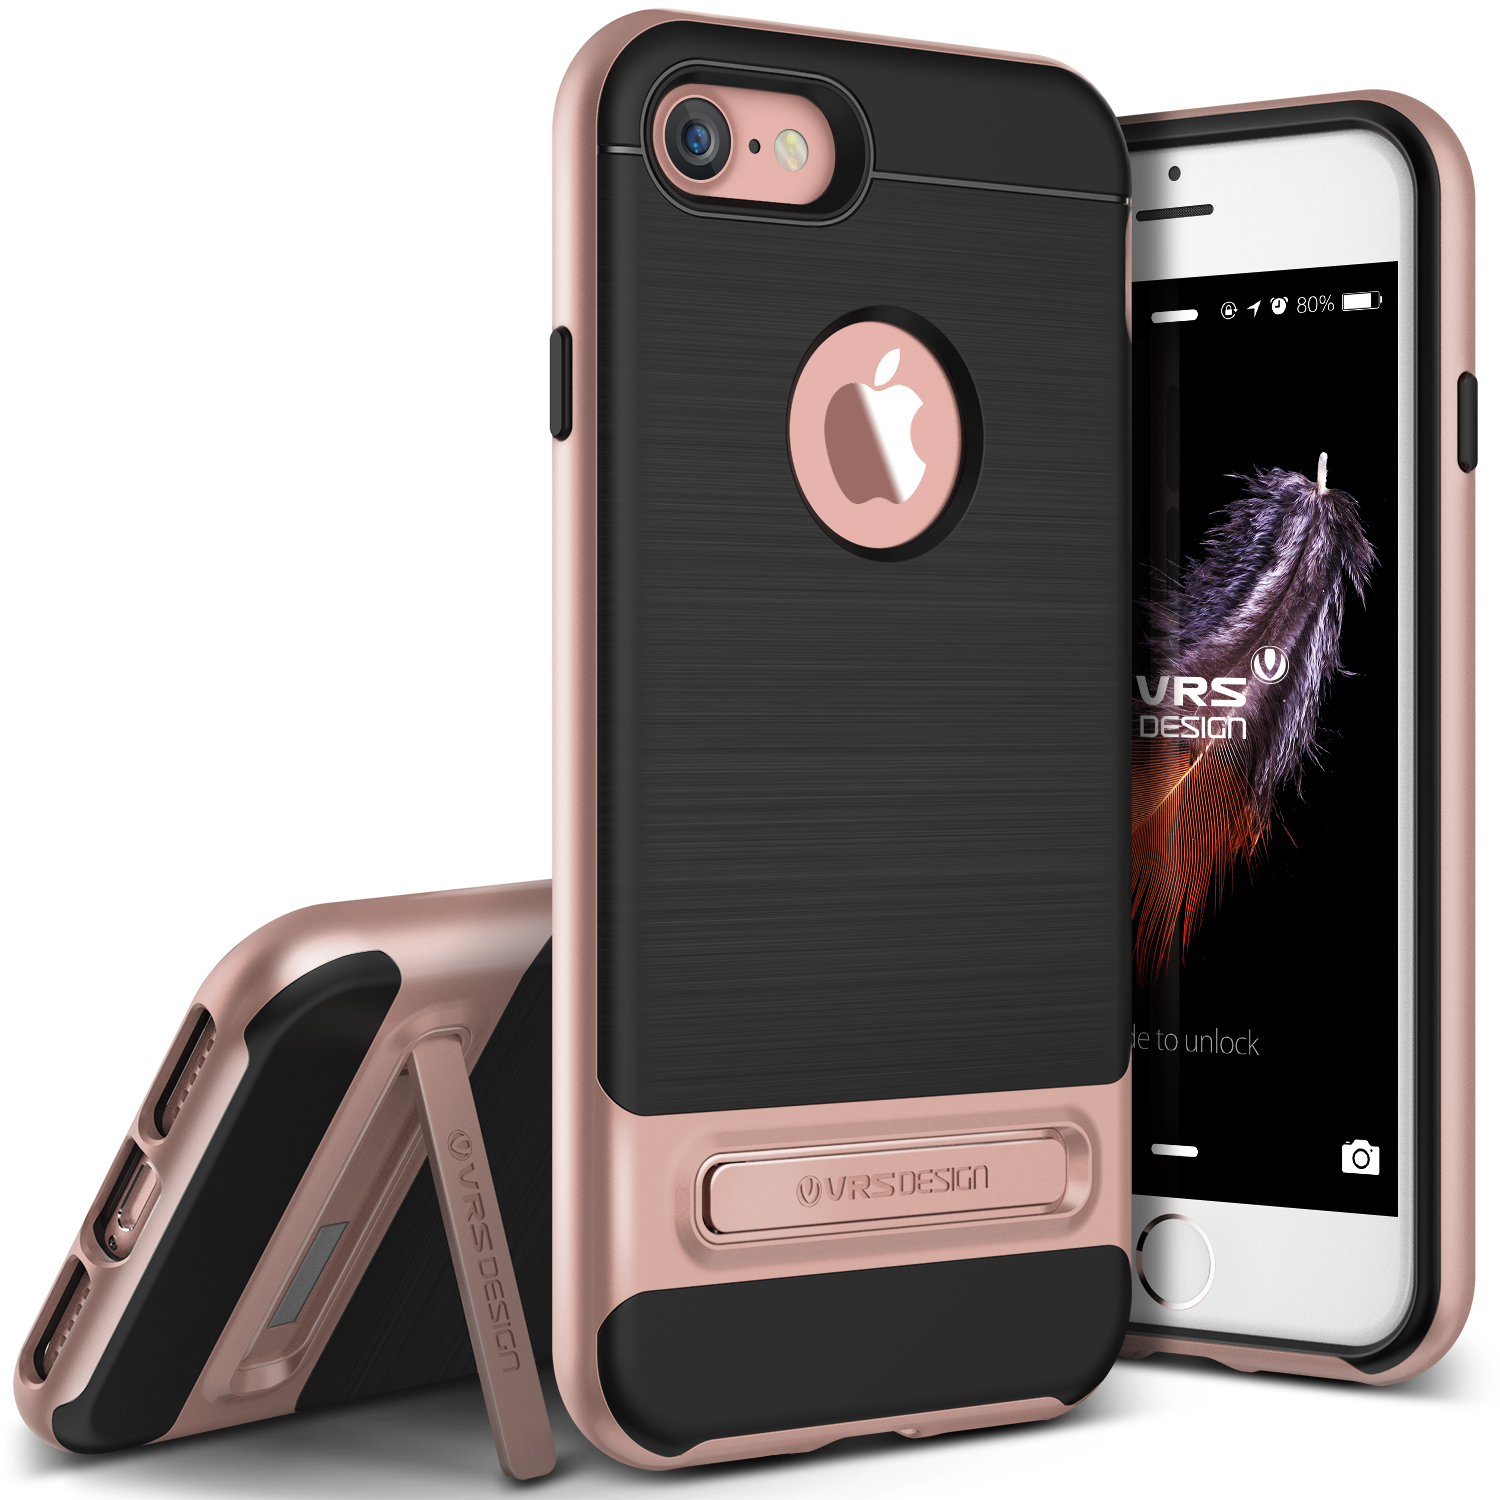 iPhone 7 Case Cover | Slim Rugged Protection | VRS Design High Pro Shield for Apple iPhone 7